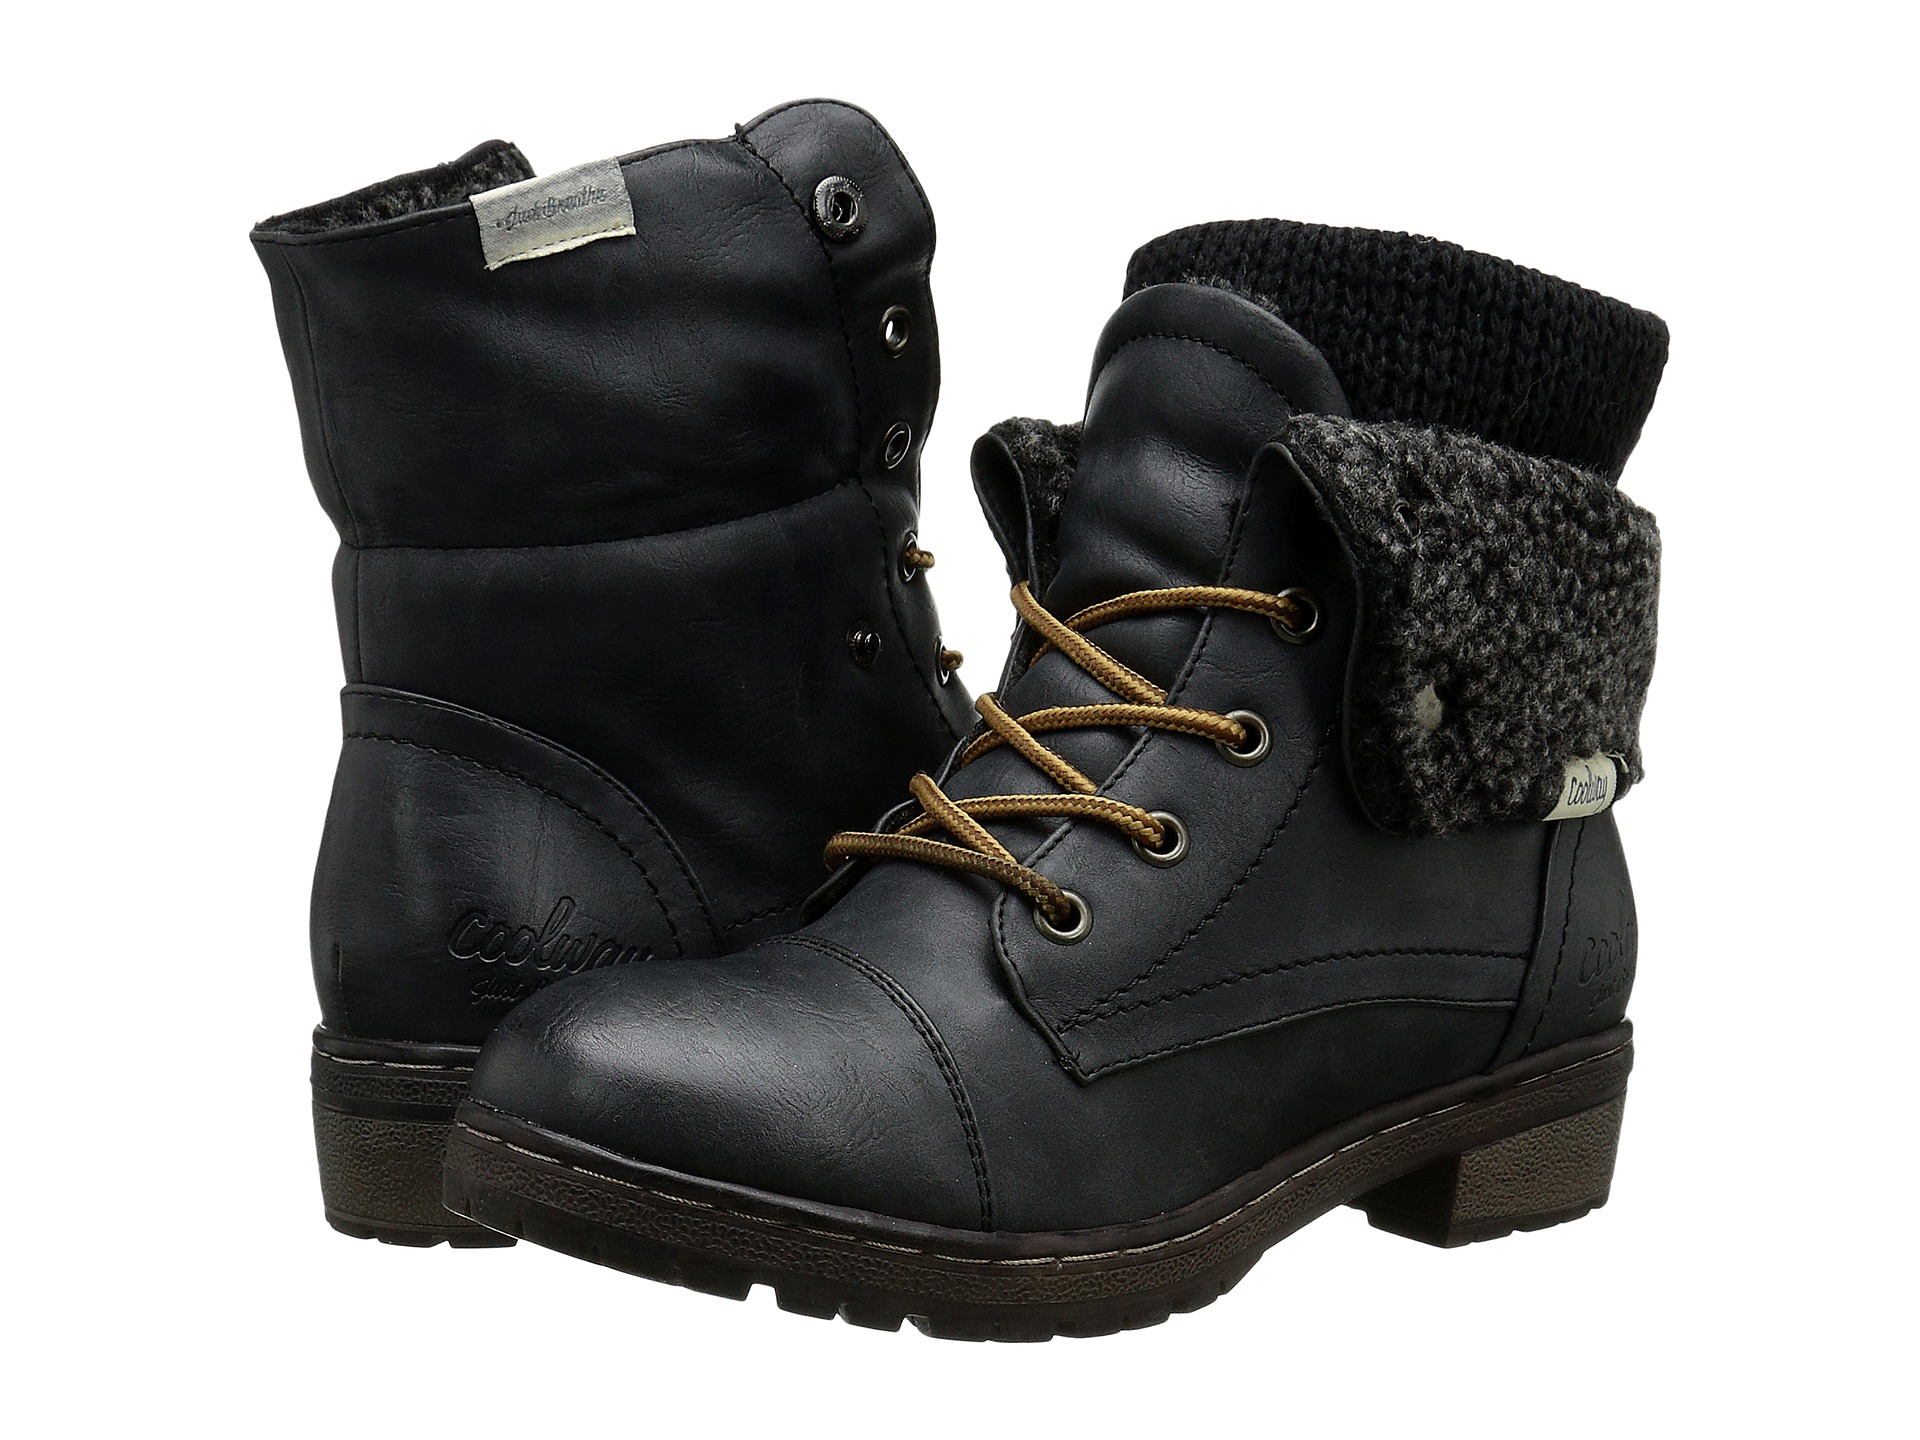 Boots, Snow Boots, Women, Casual | Shipped Free at Zappos